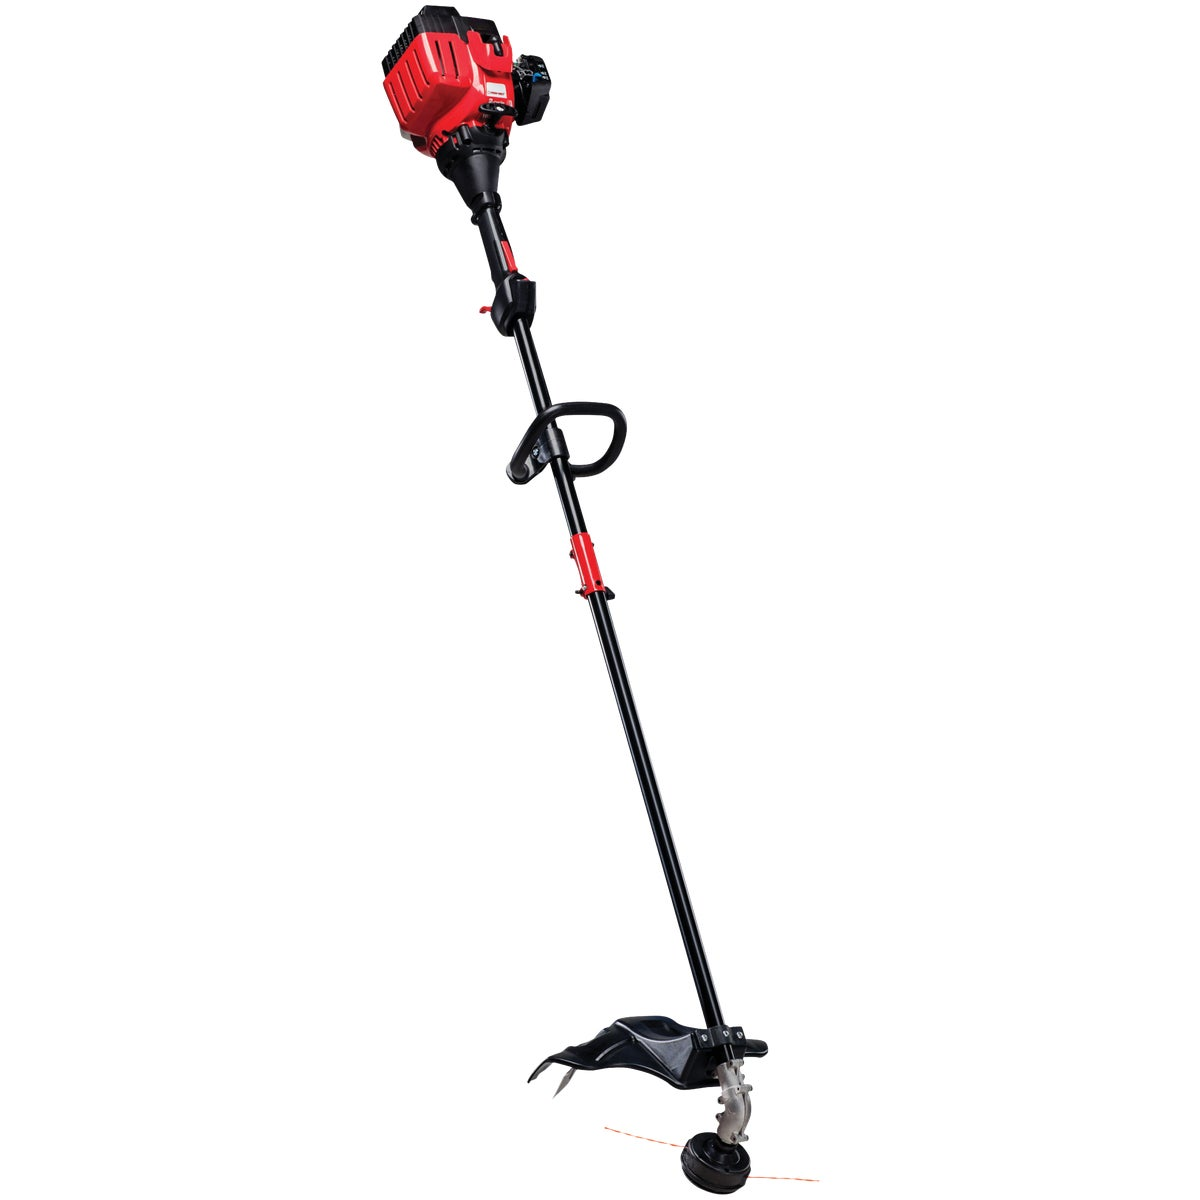 "17"" GAS STRING TRIMMER - 41BDZ32C766 by M T D Southwest Inc"